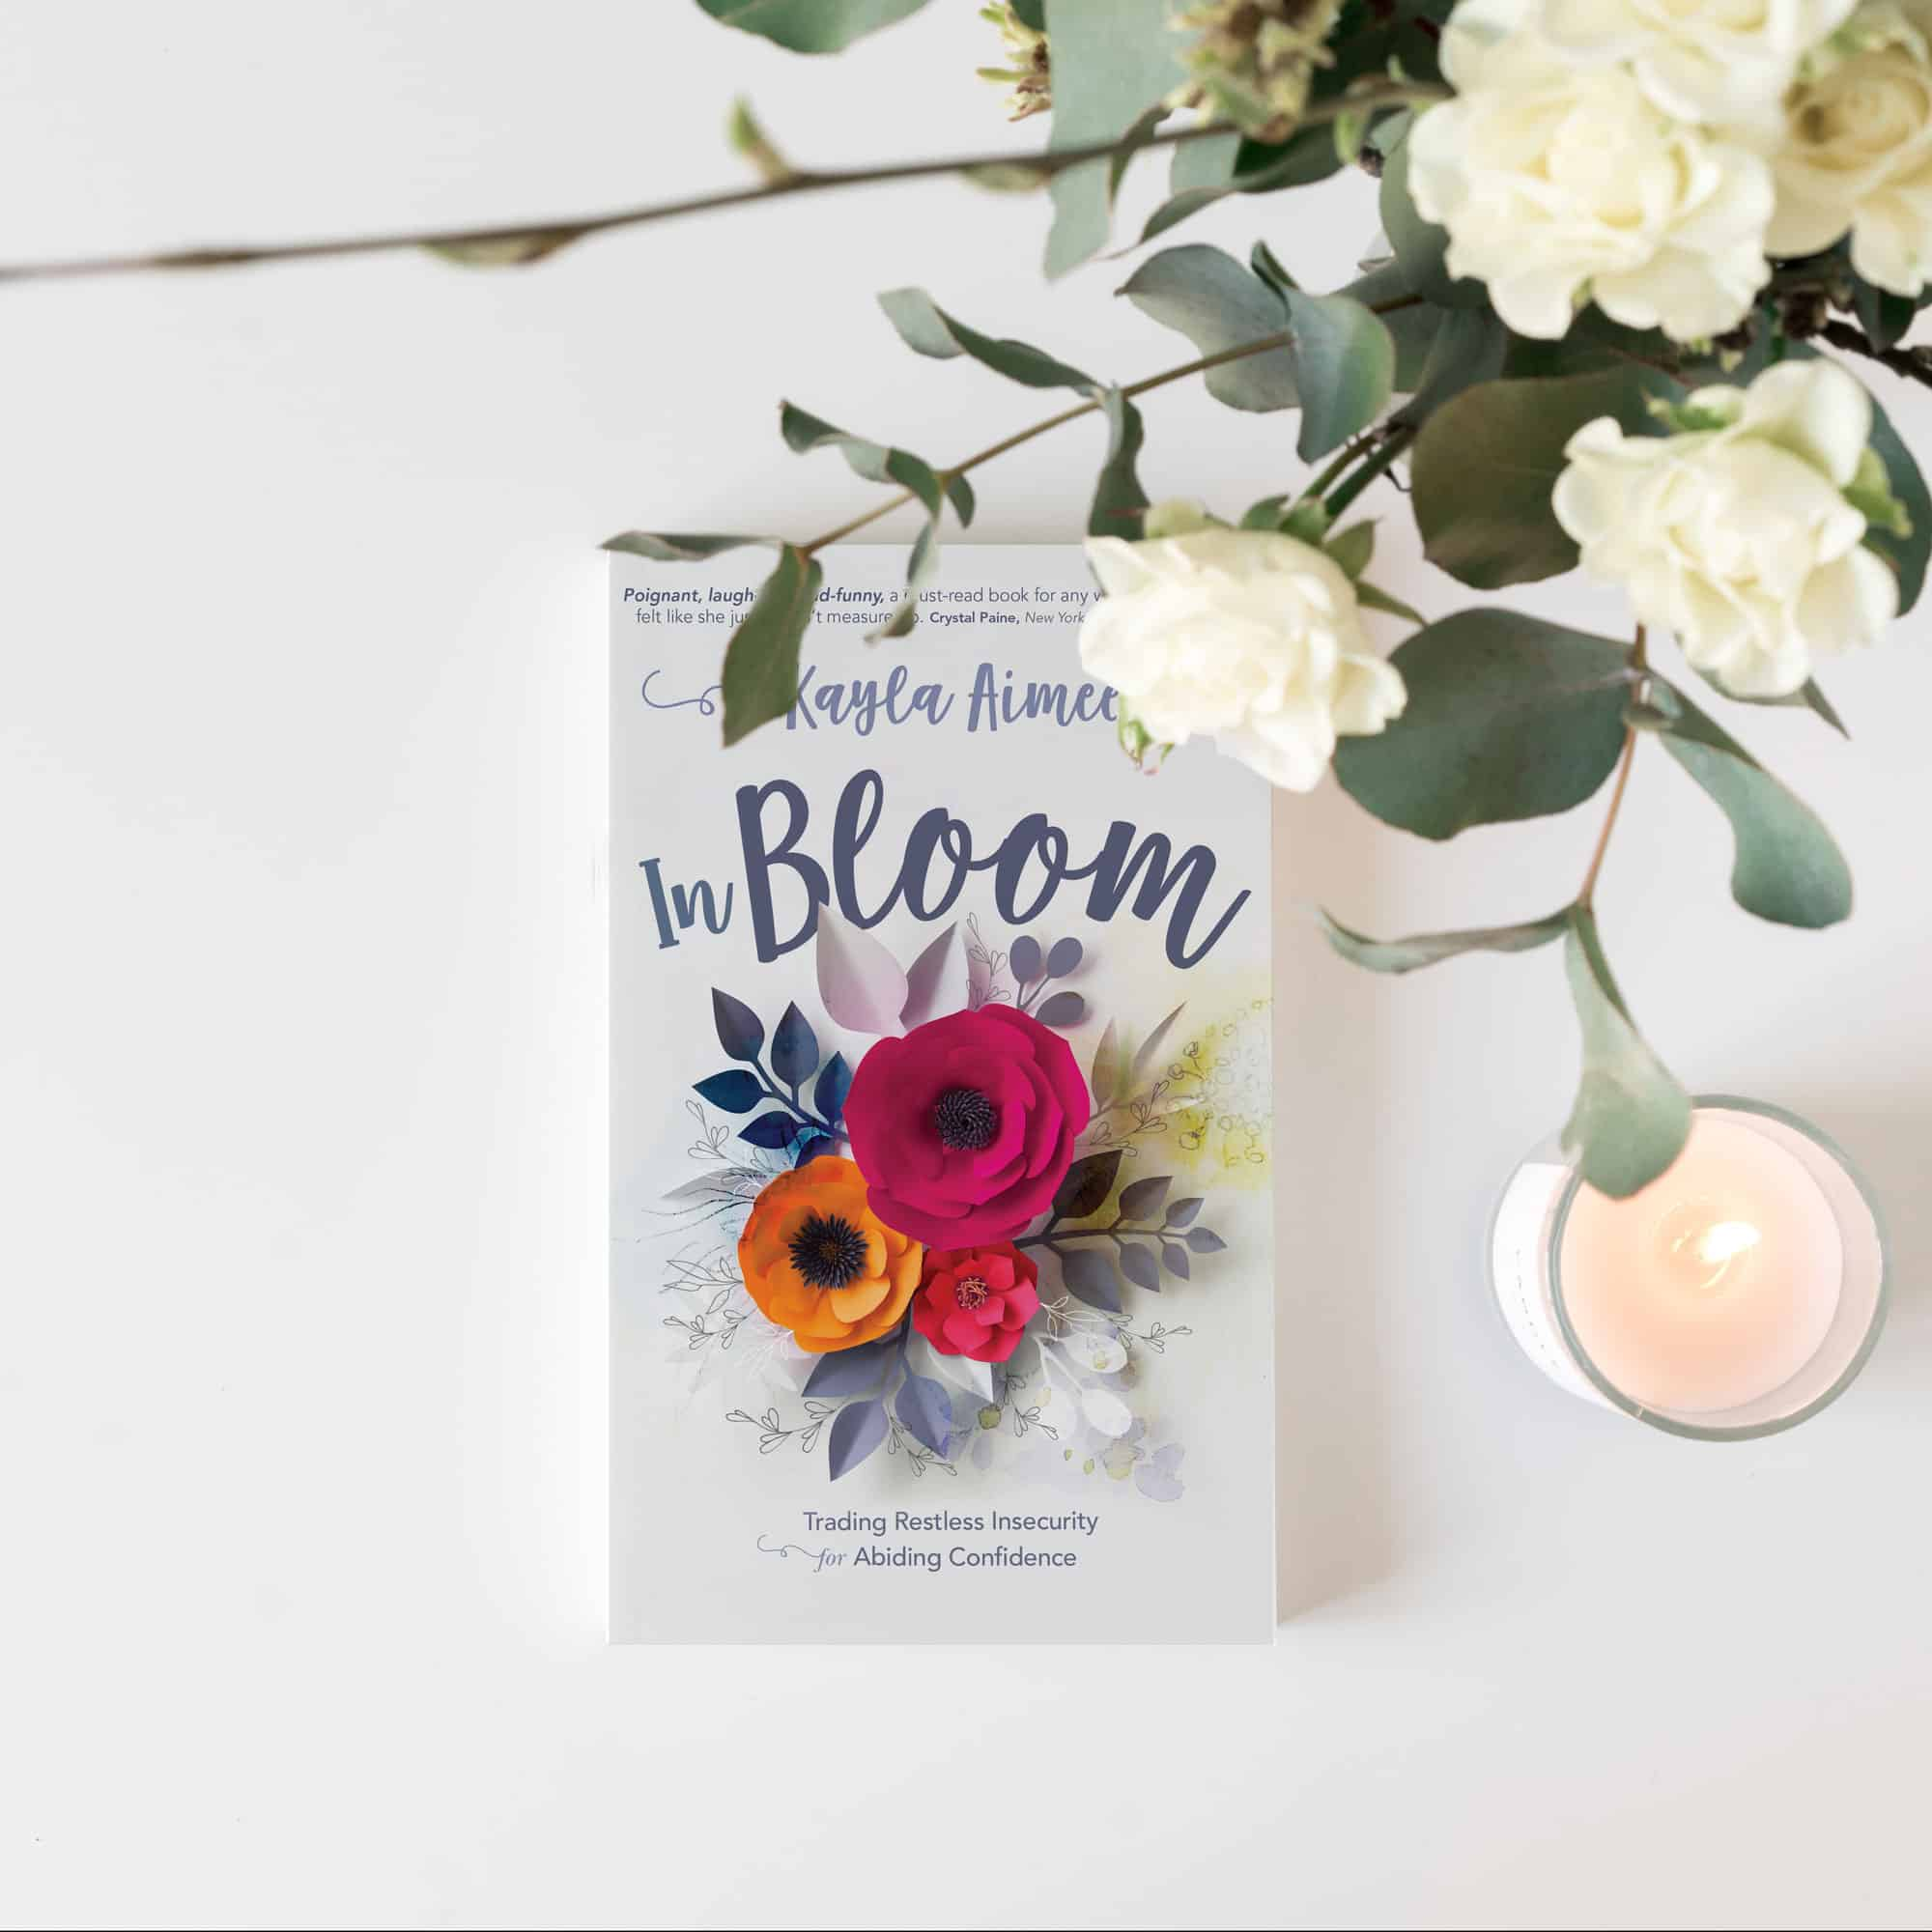 In Bloom: Overcoming Shame & Insecurity